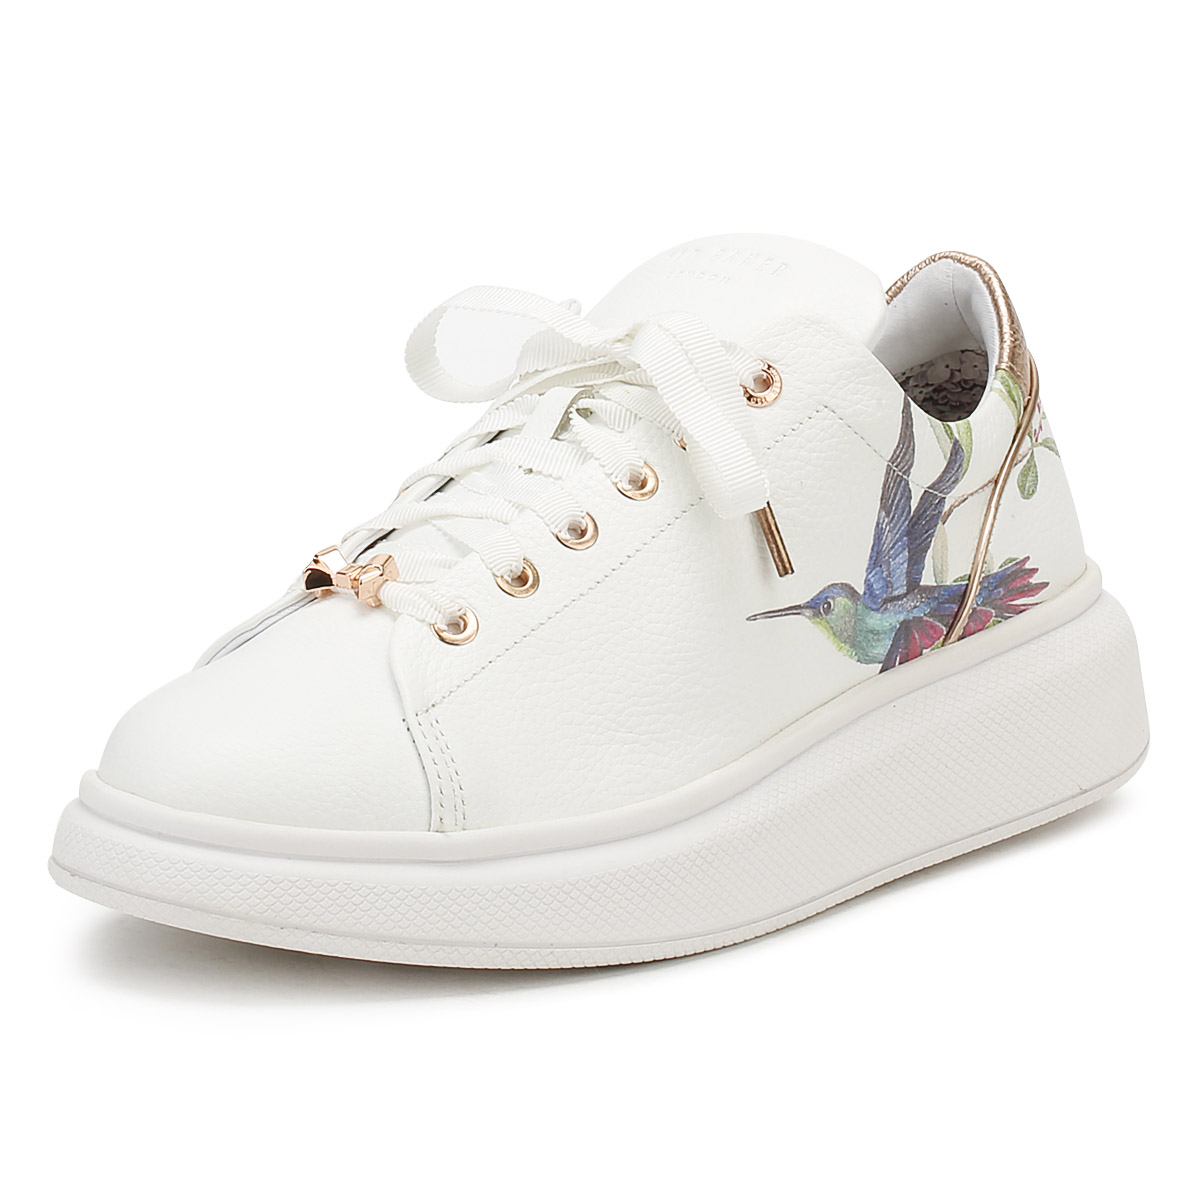 7851194427c Details about Ted Baker Womens White Ailbe Trainers Ladies Lace Up Sport  Casual Shoes